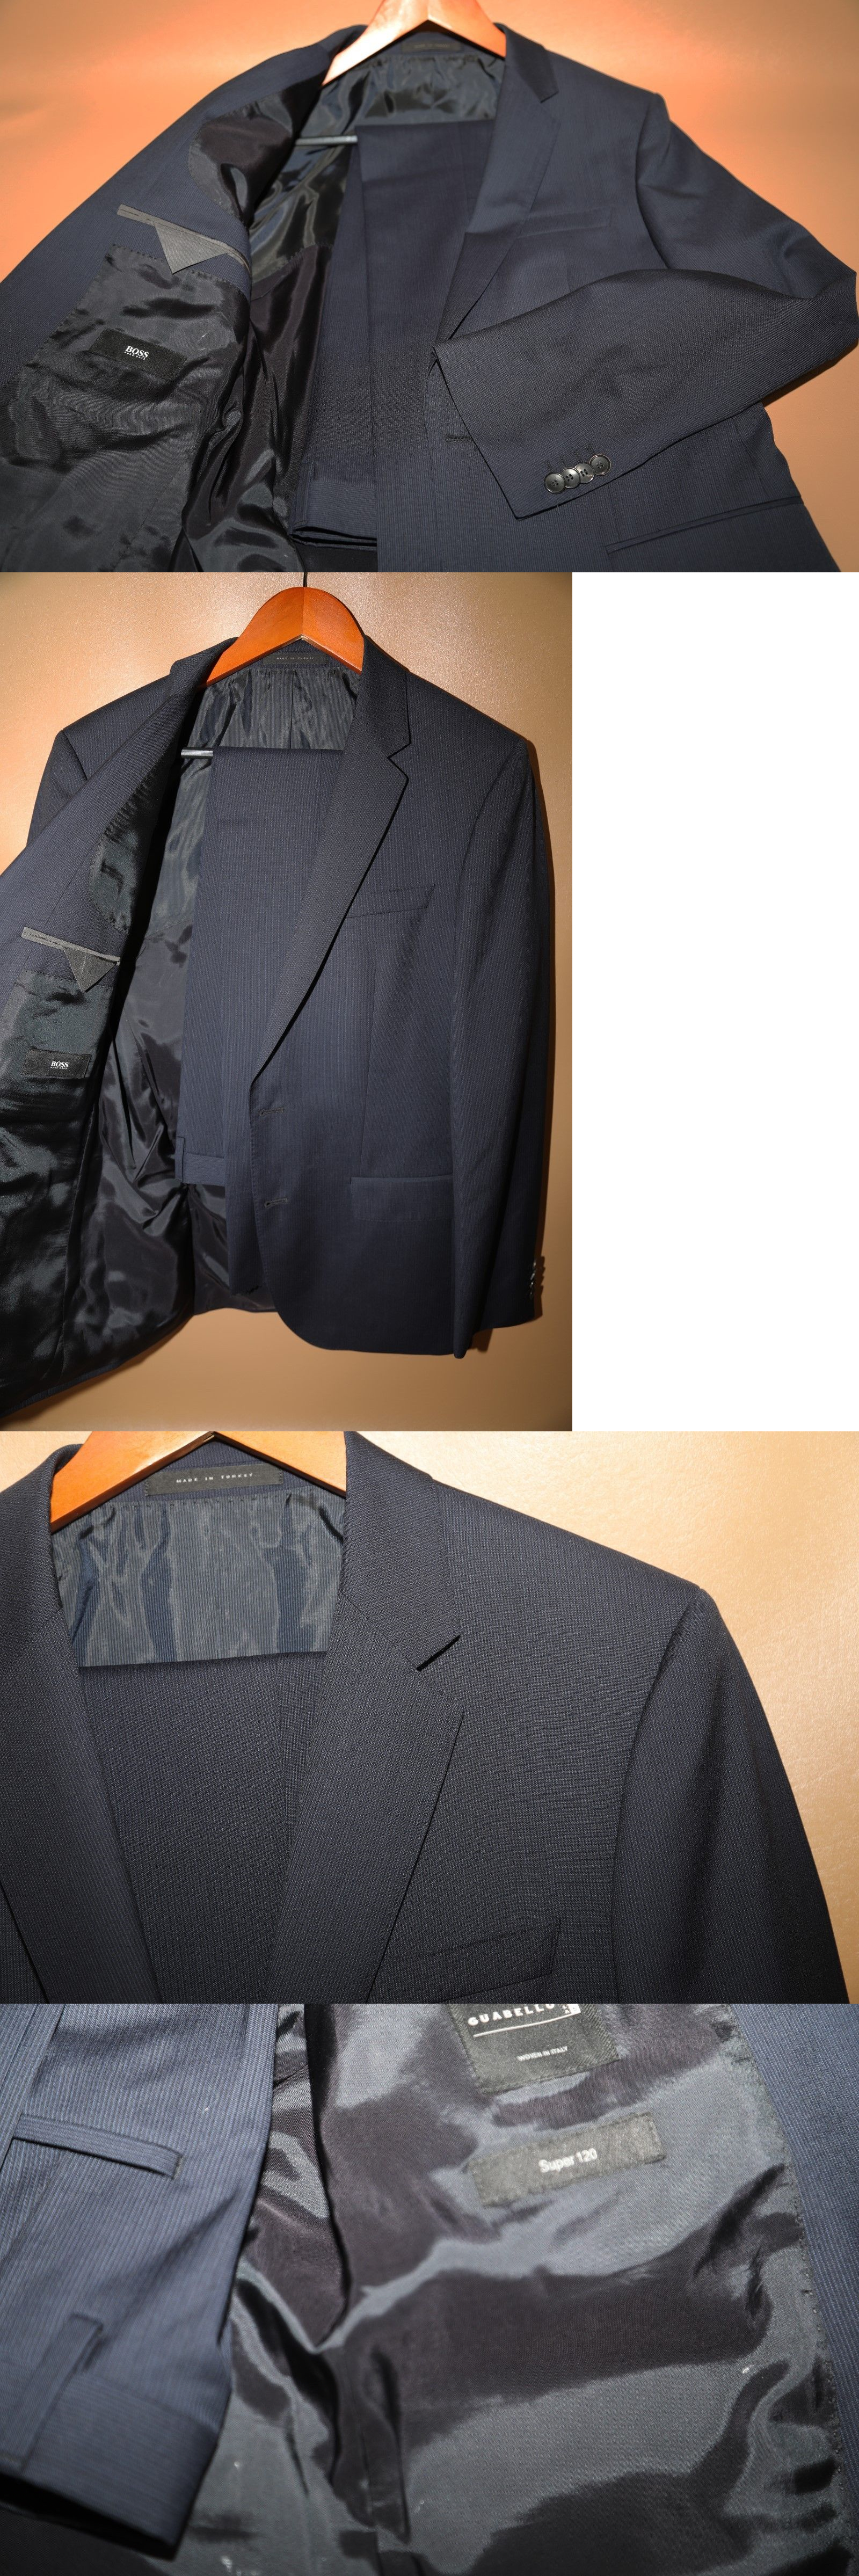 f17ab49d Suits 3001: Hugo Boss Huge4 Genius3 Blue Super 120 S Two Button Suit Size  38 R -> BUY IT NOW ONLY: $325 on eBay!